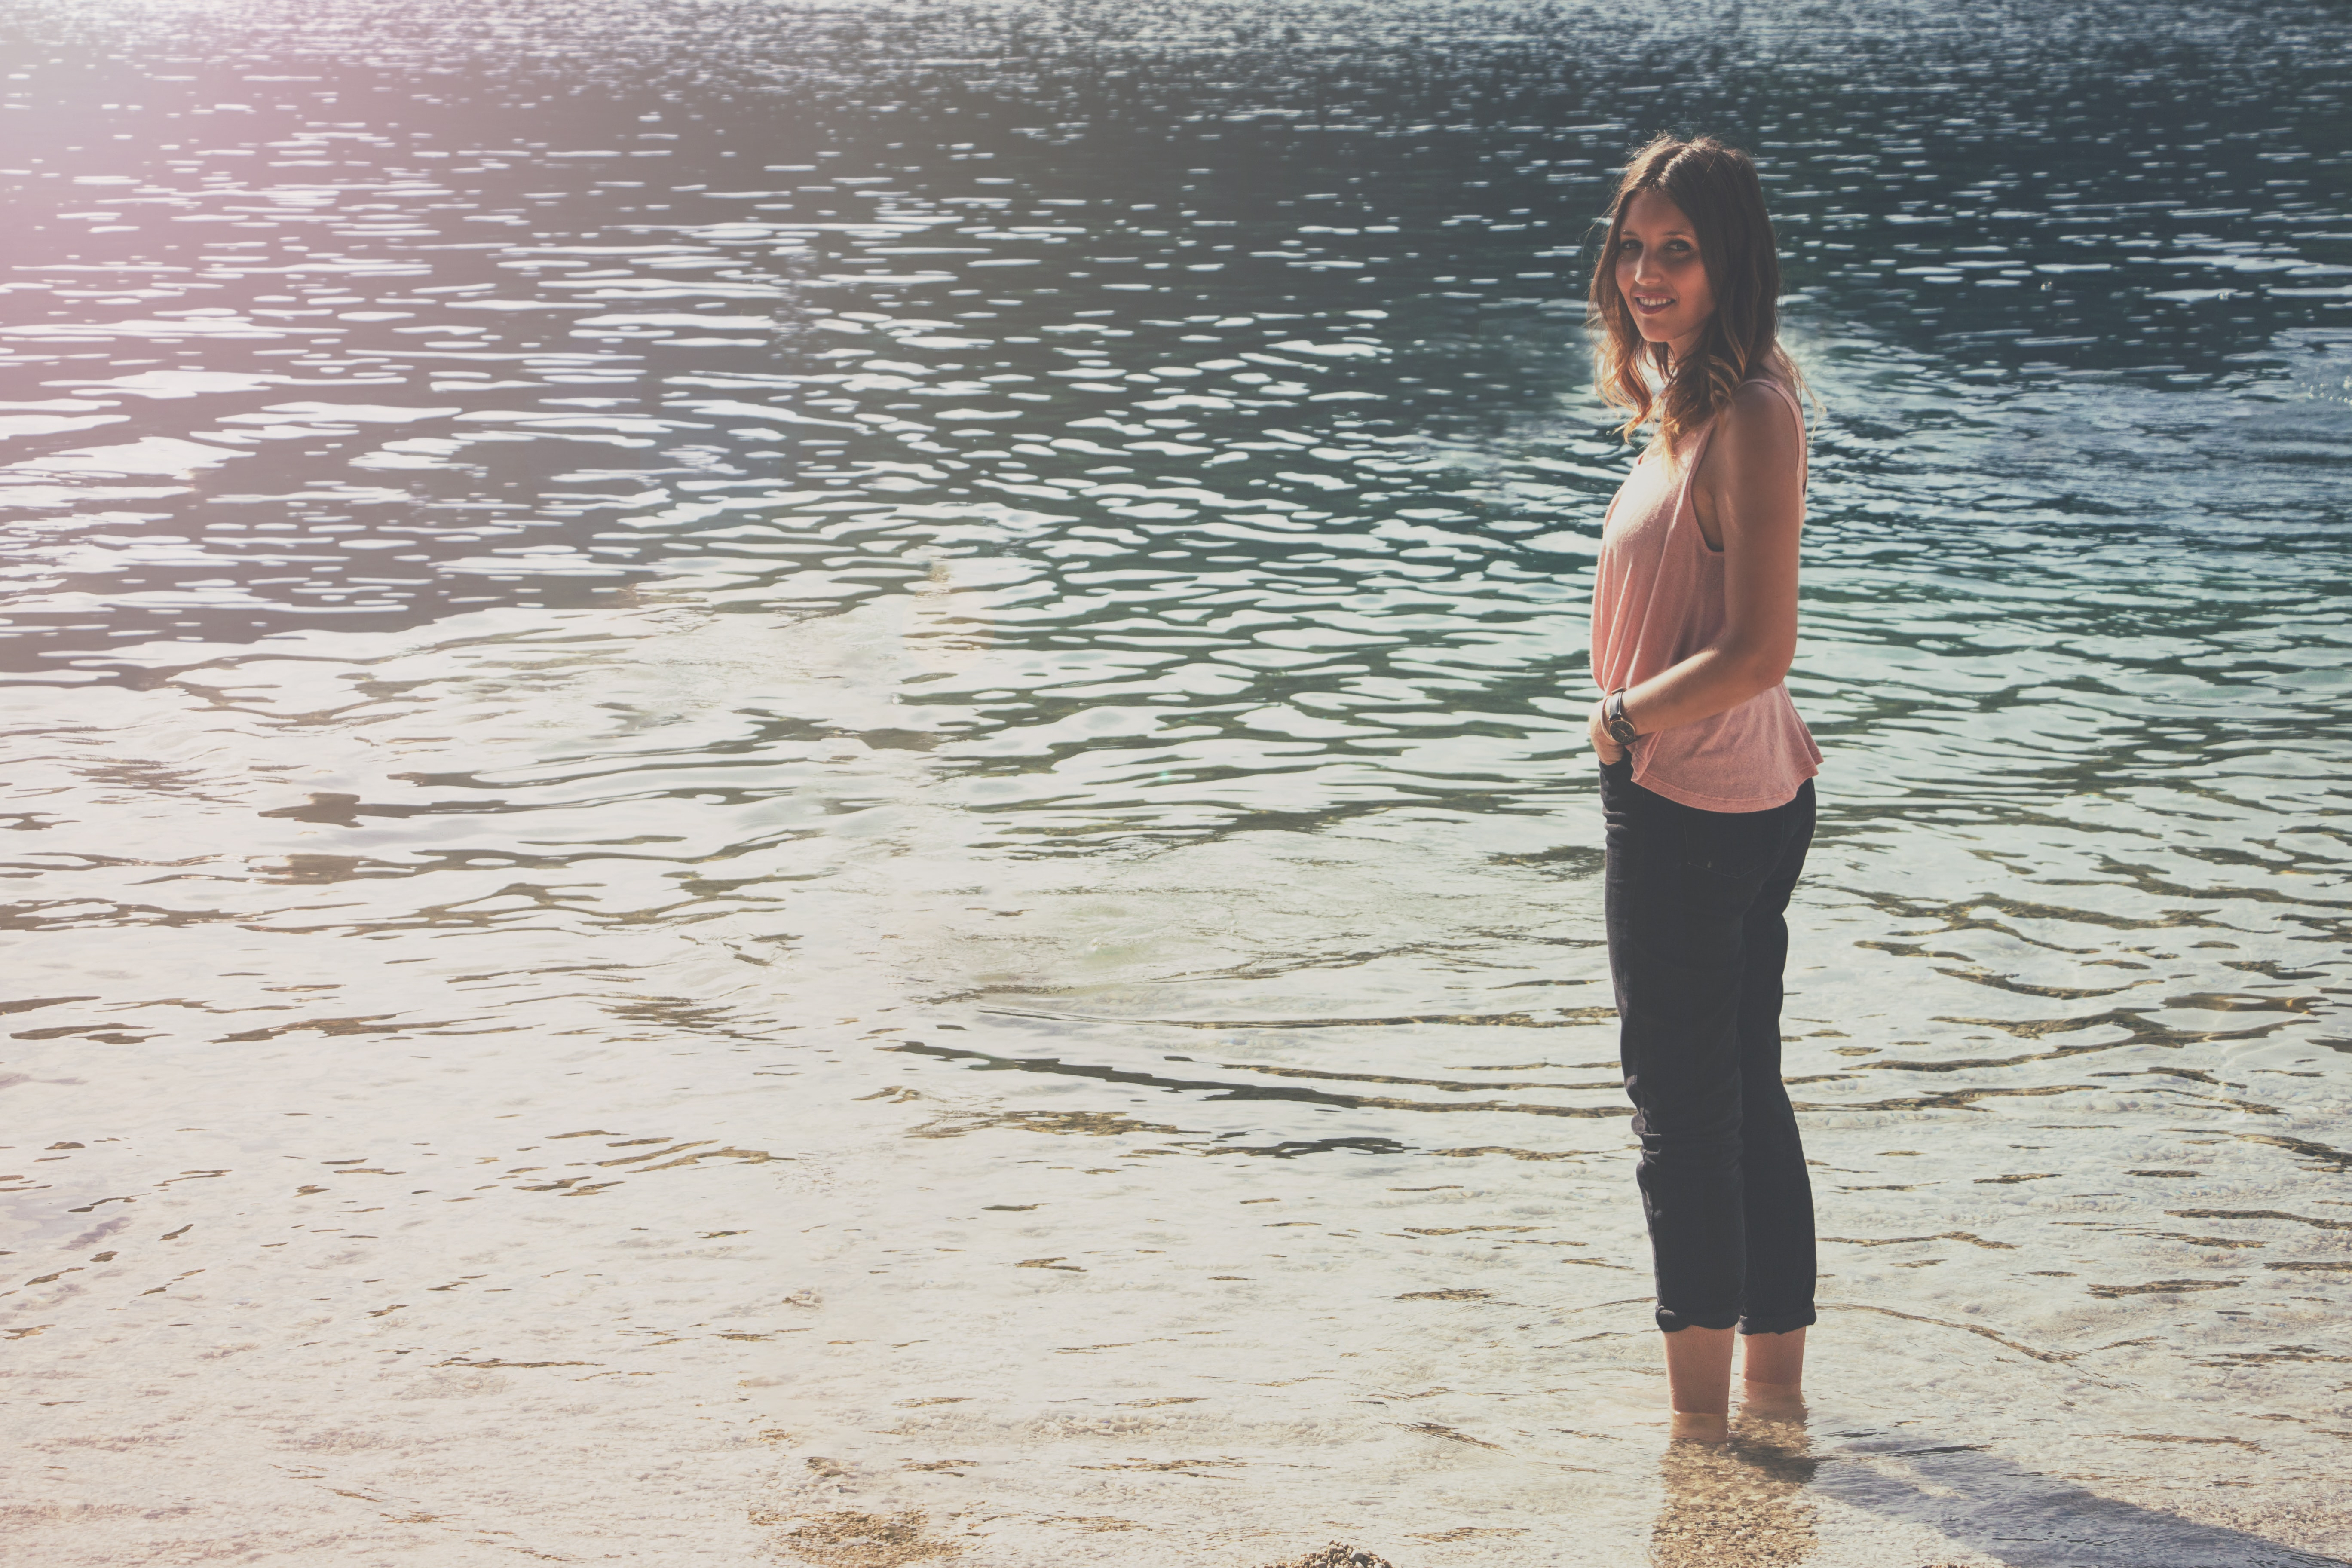 woman in pink sleeveless top and black cargo pants standing on body of water